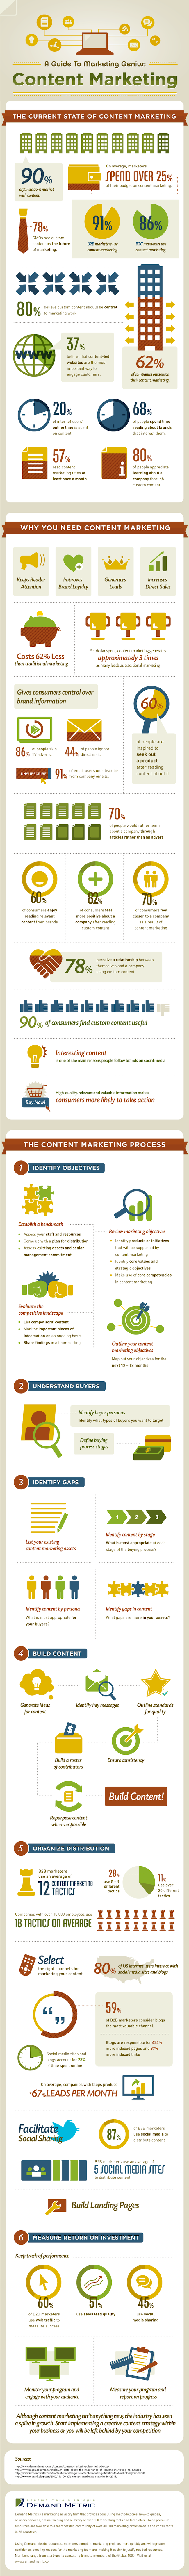 beginners_guide_to_content_marketing3